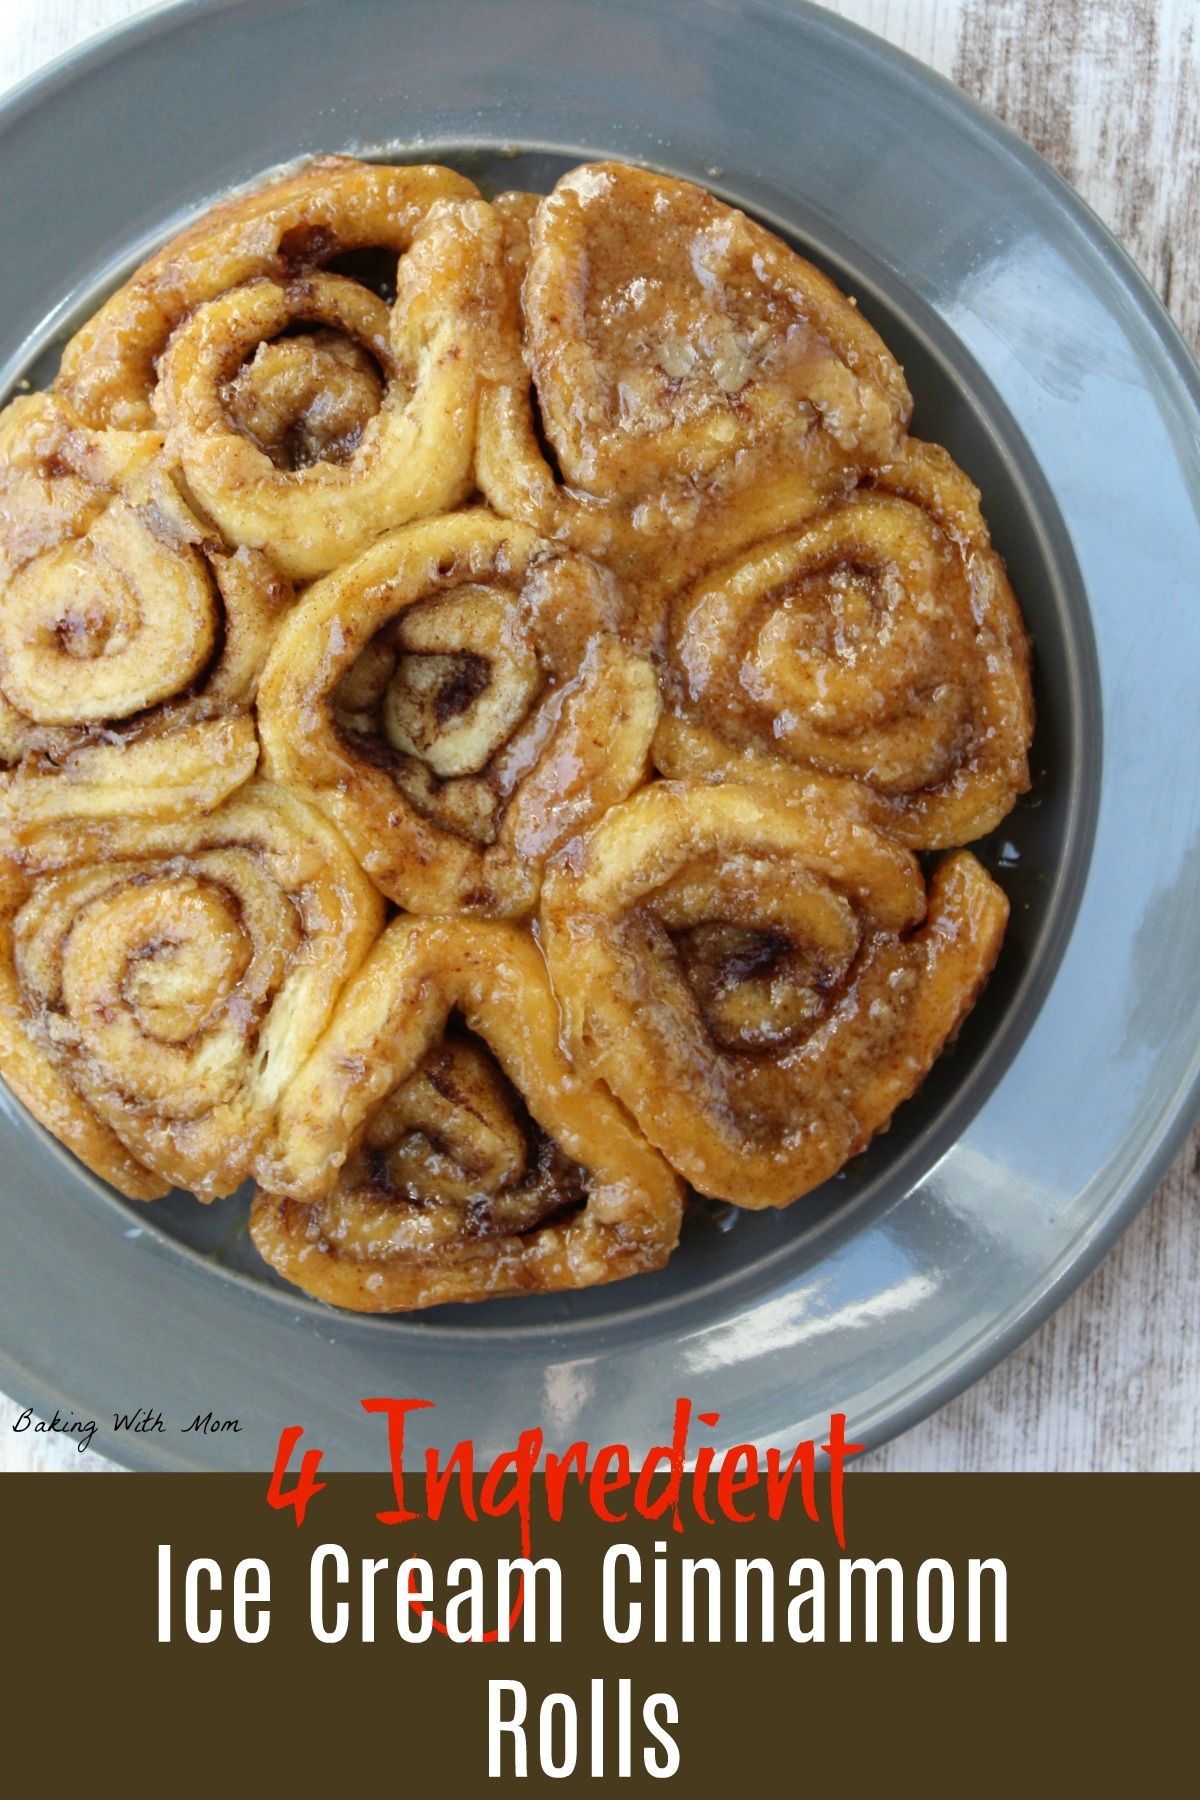 Cinnamon rolls on a gray plate with a brown sugar topping with butter